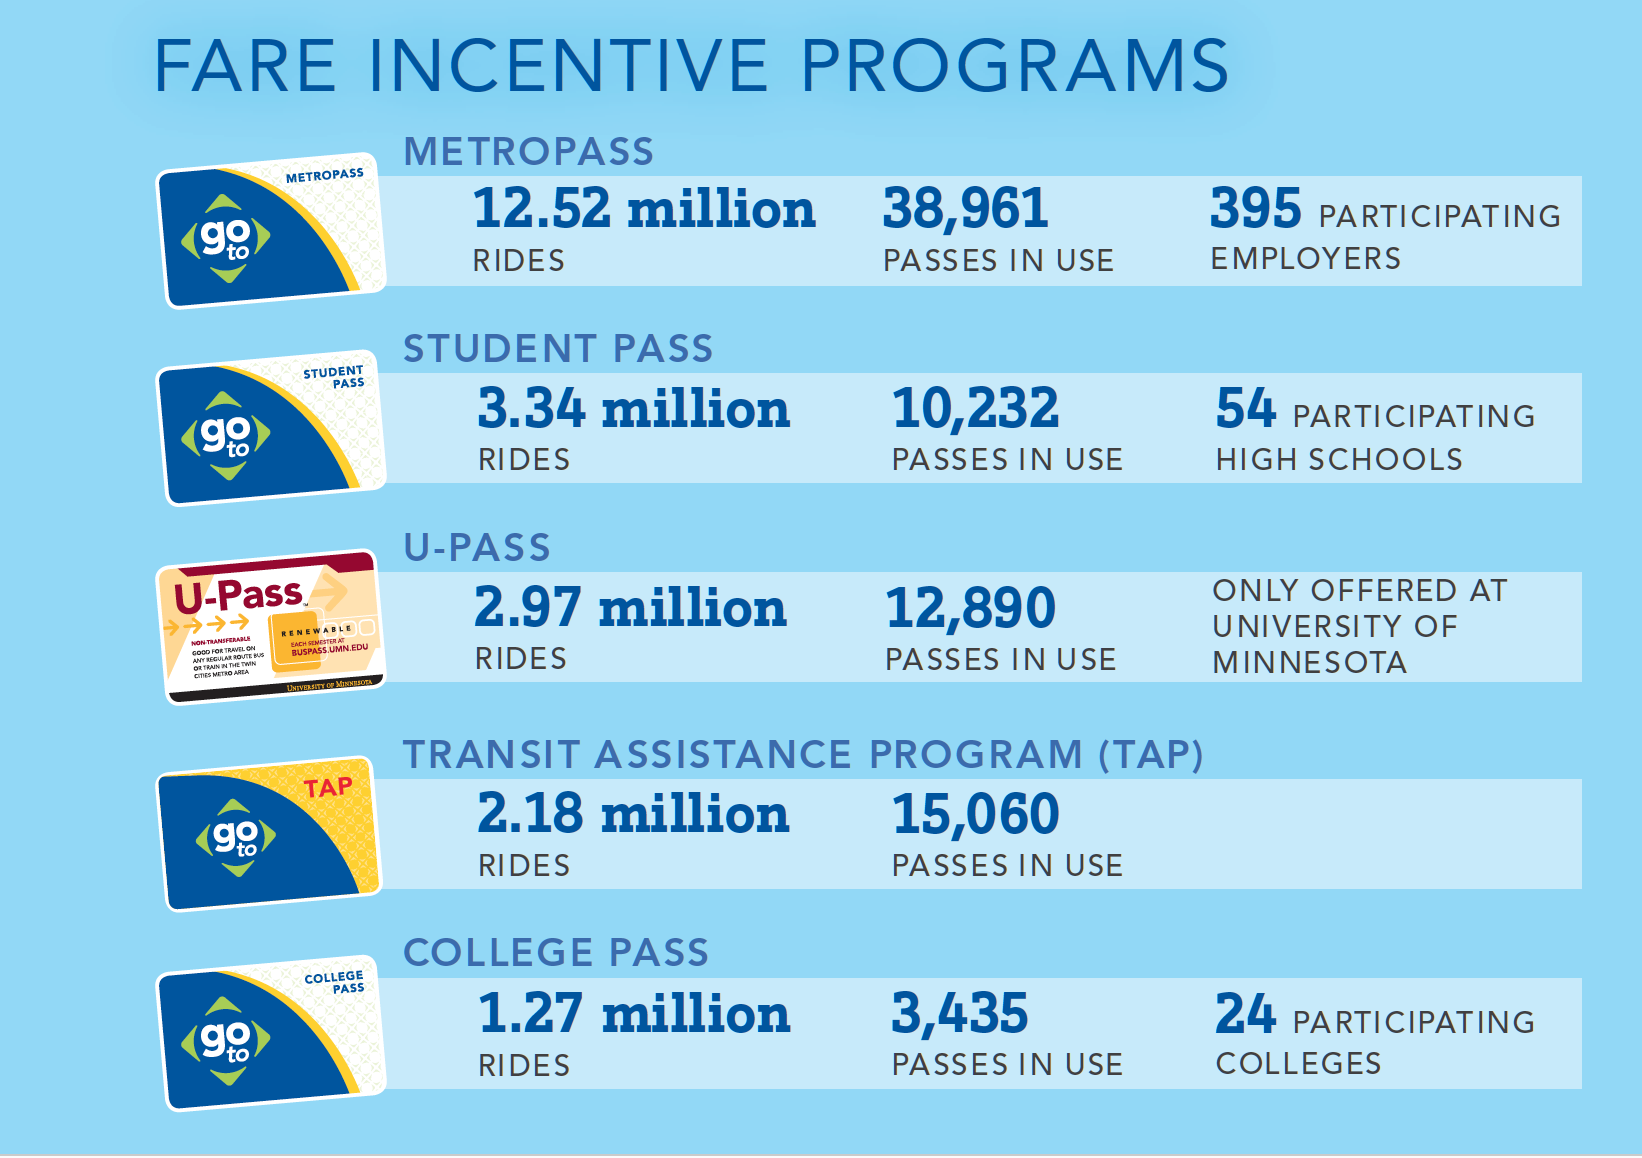 Fare Incentive Programs for schools and employers